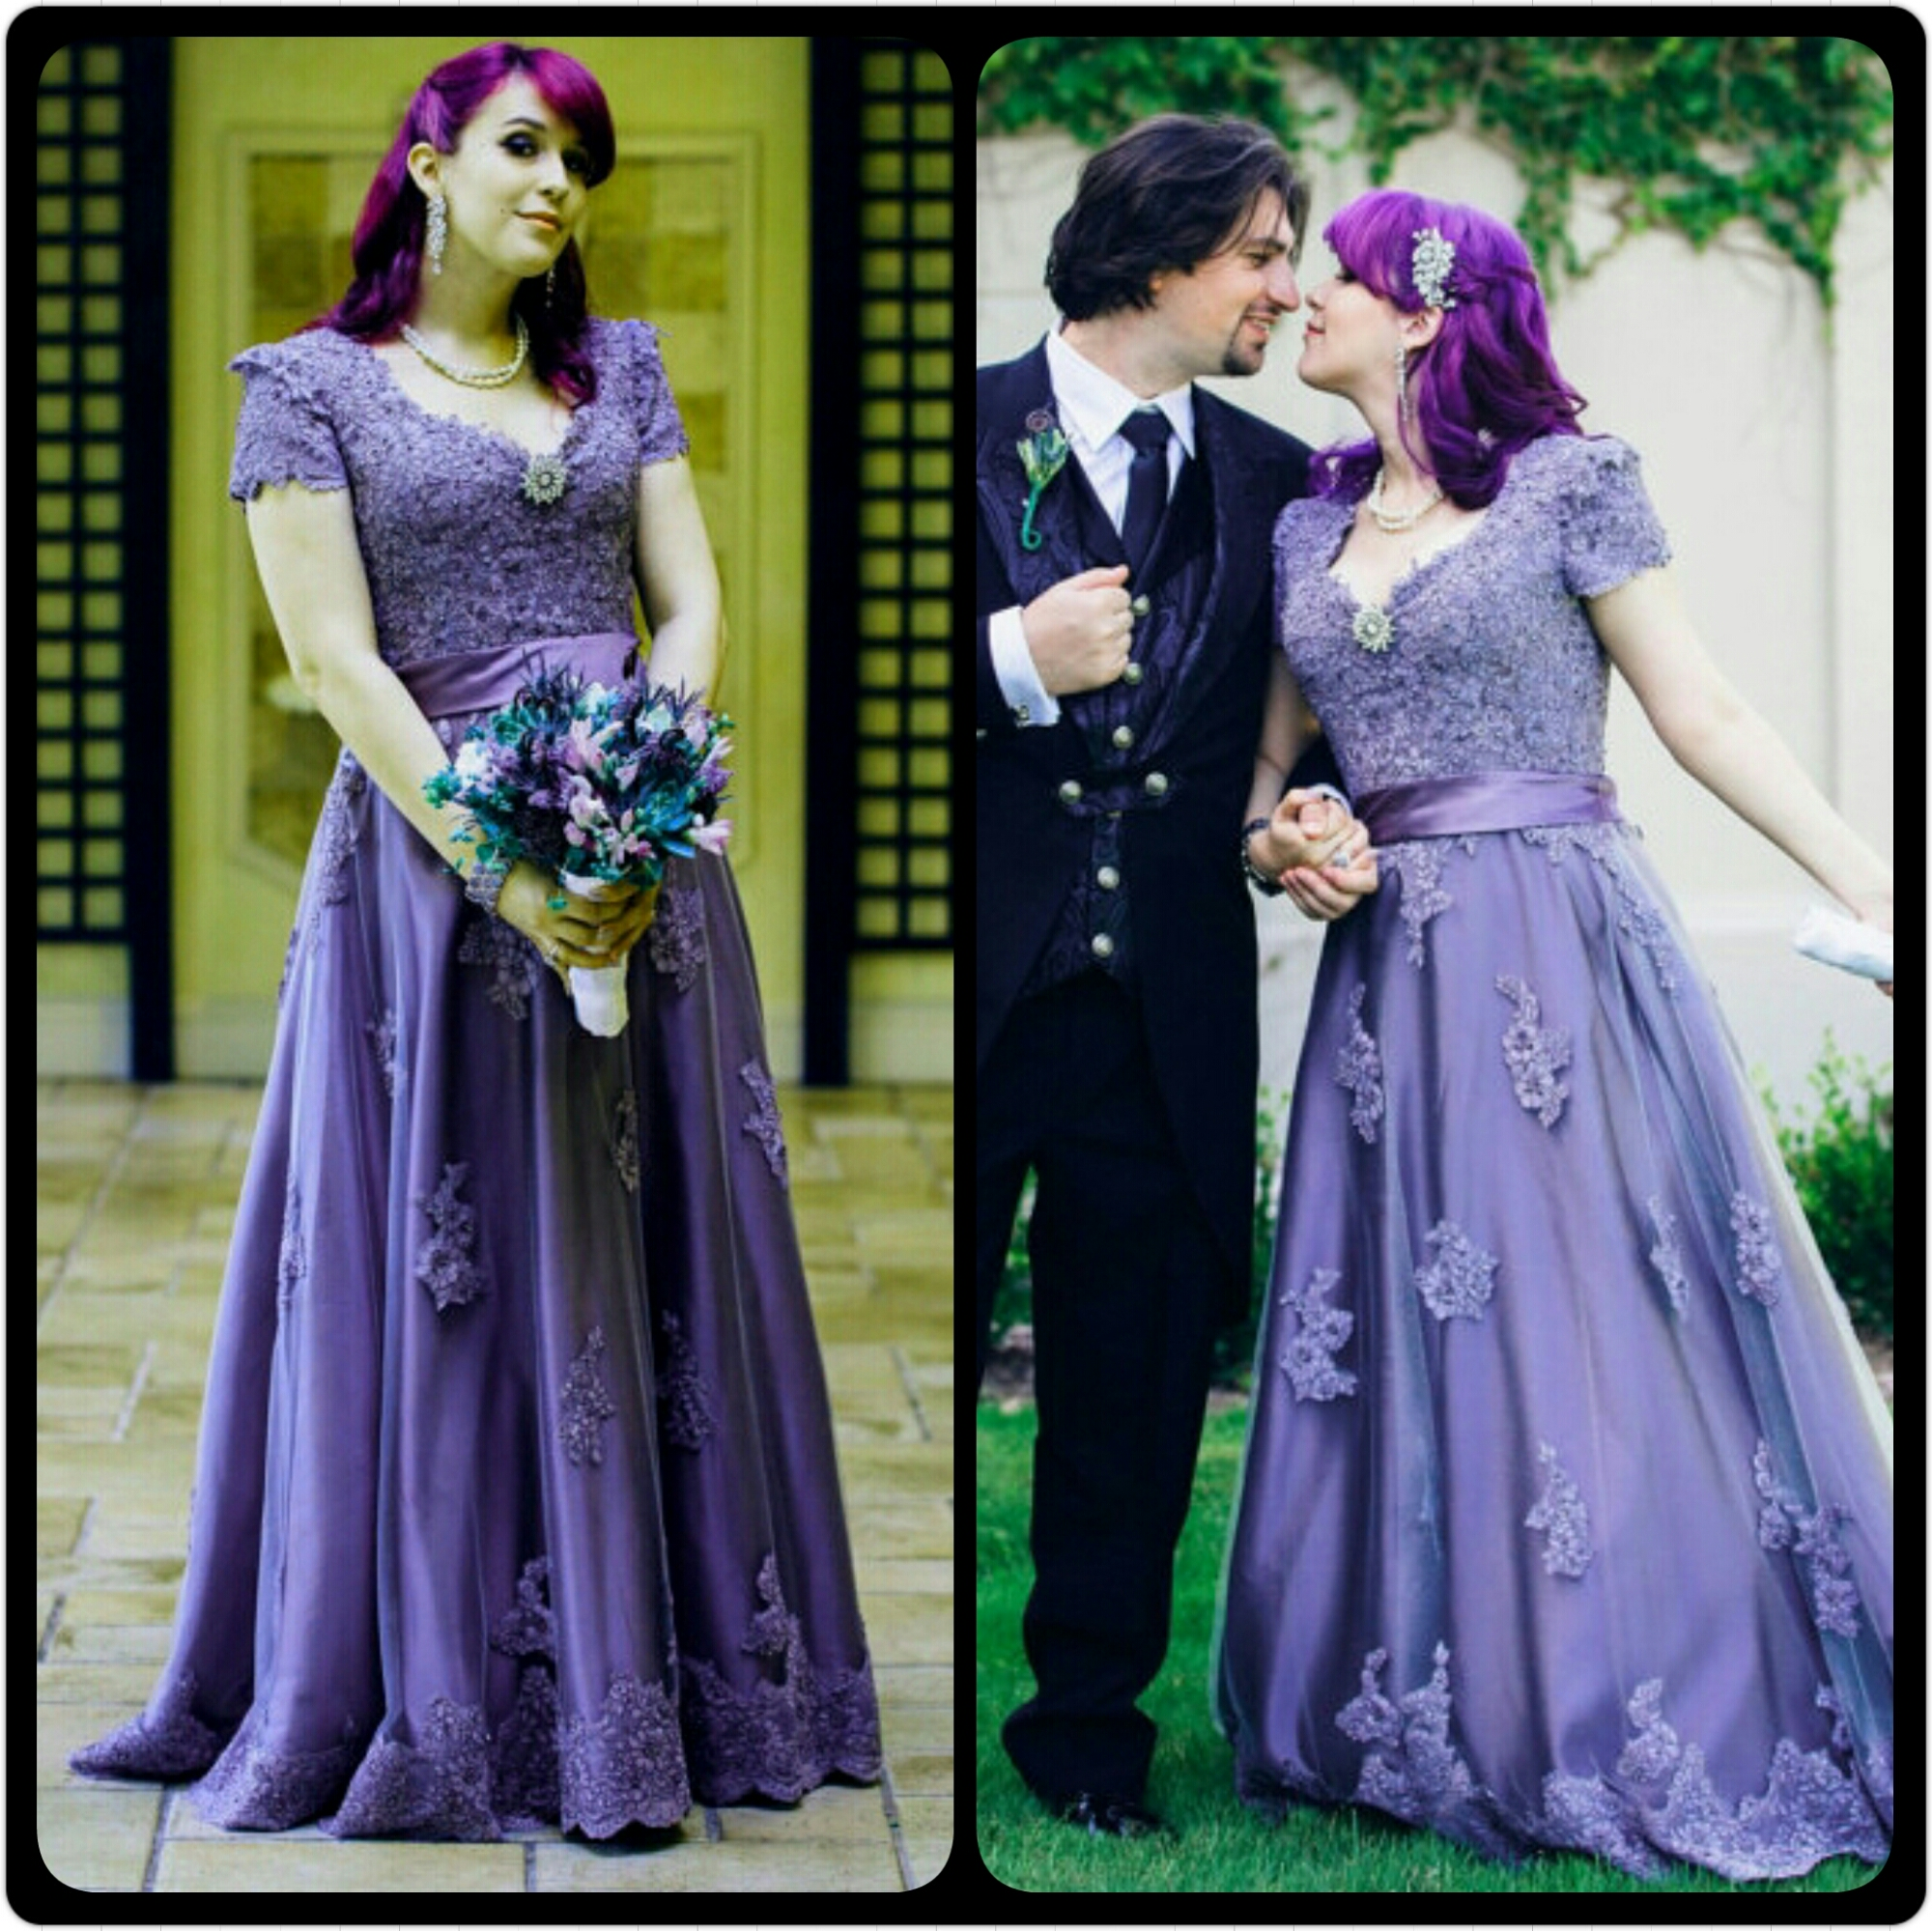 Awesome lilac dresses for weddings contemporary styles ideas 20 gorgeous wedding gowns in shades of purple tagweddings ombrellifo Images